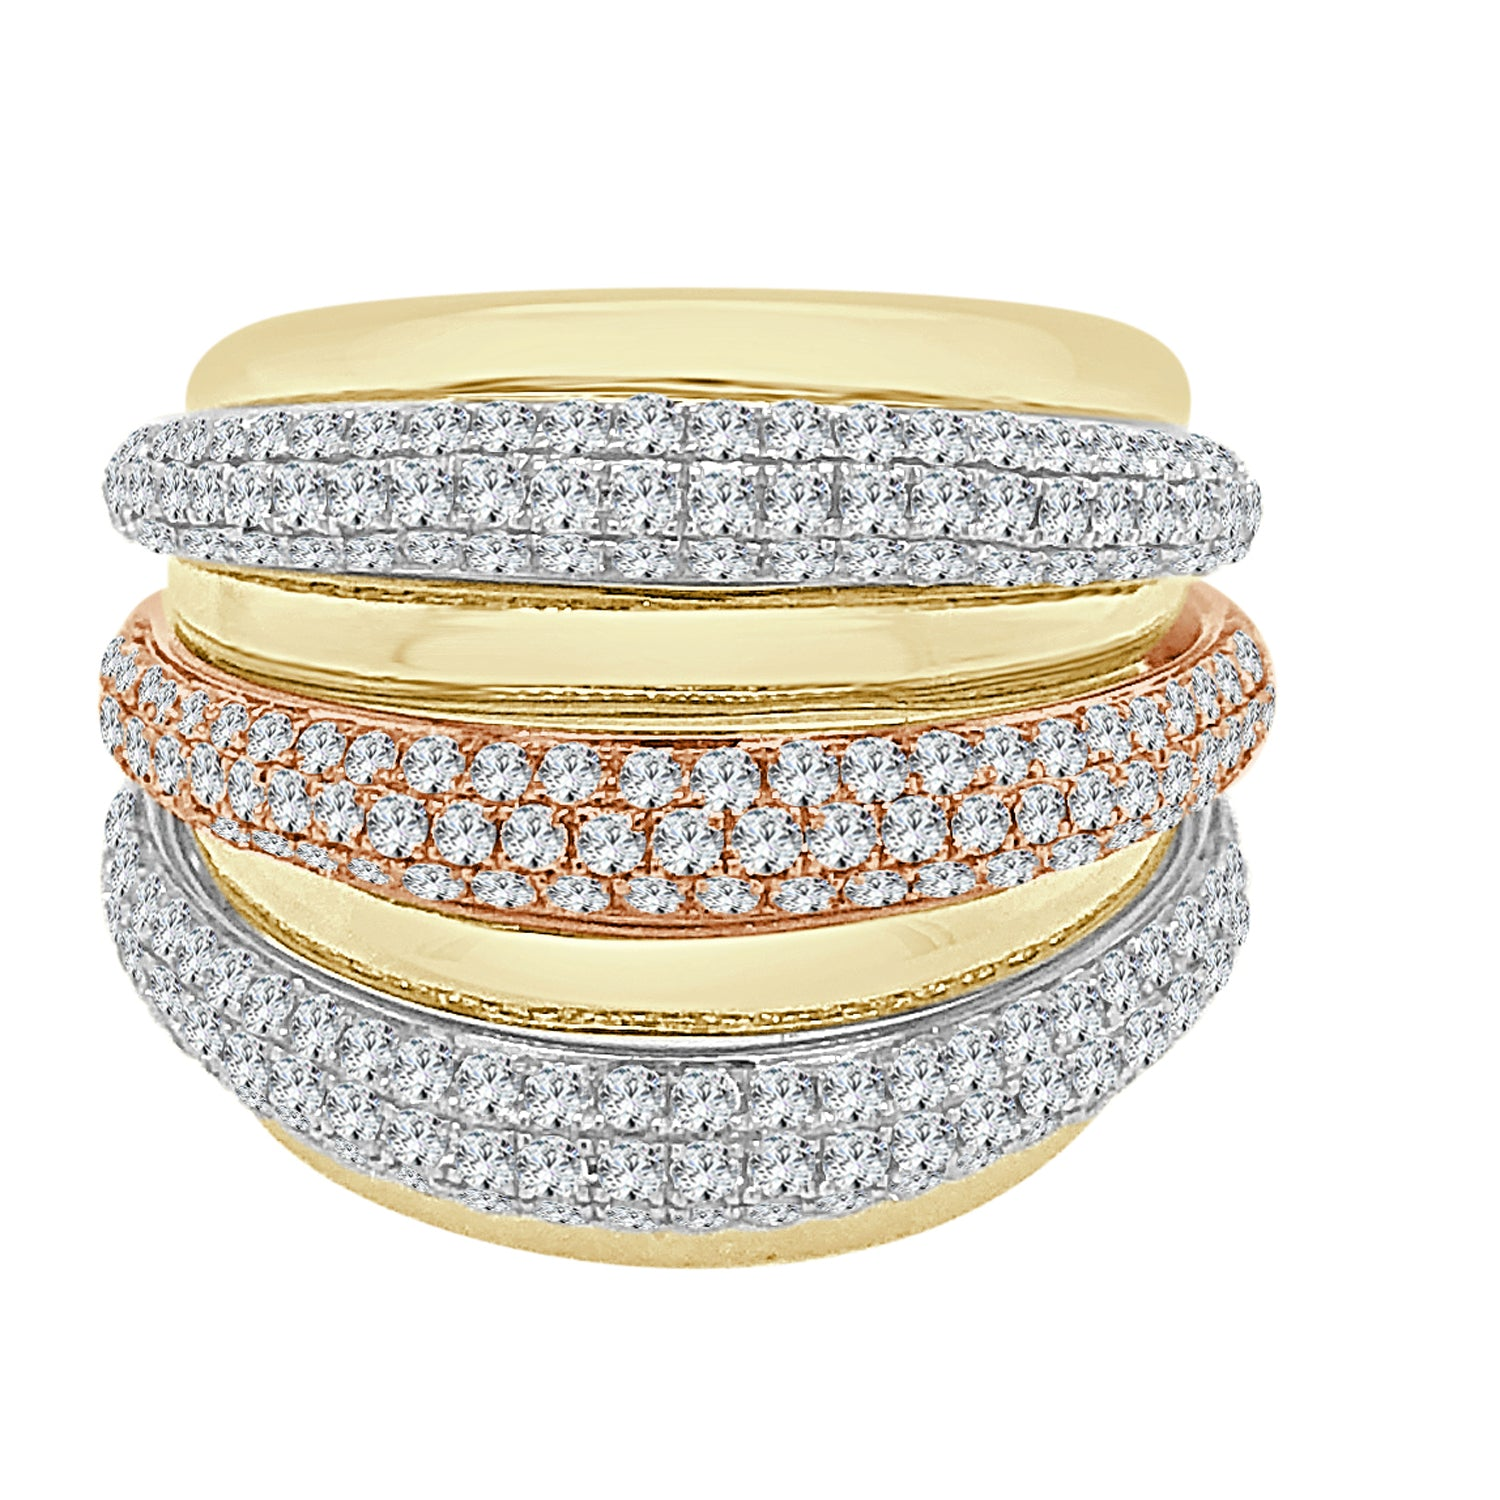 14 Karat Yellow Gold 1.46 Carat Diamond Ring